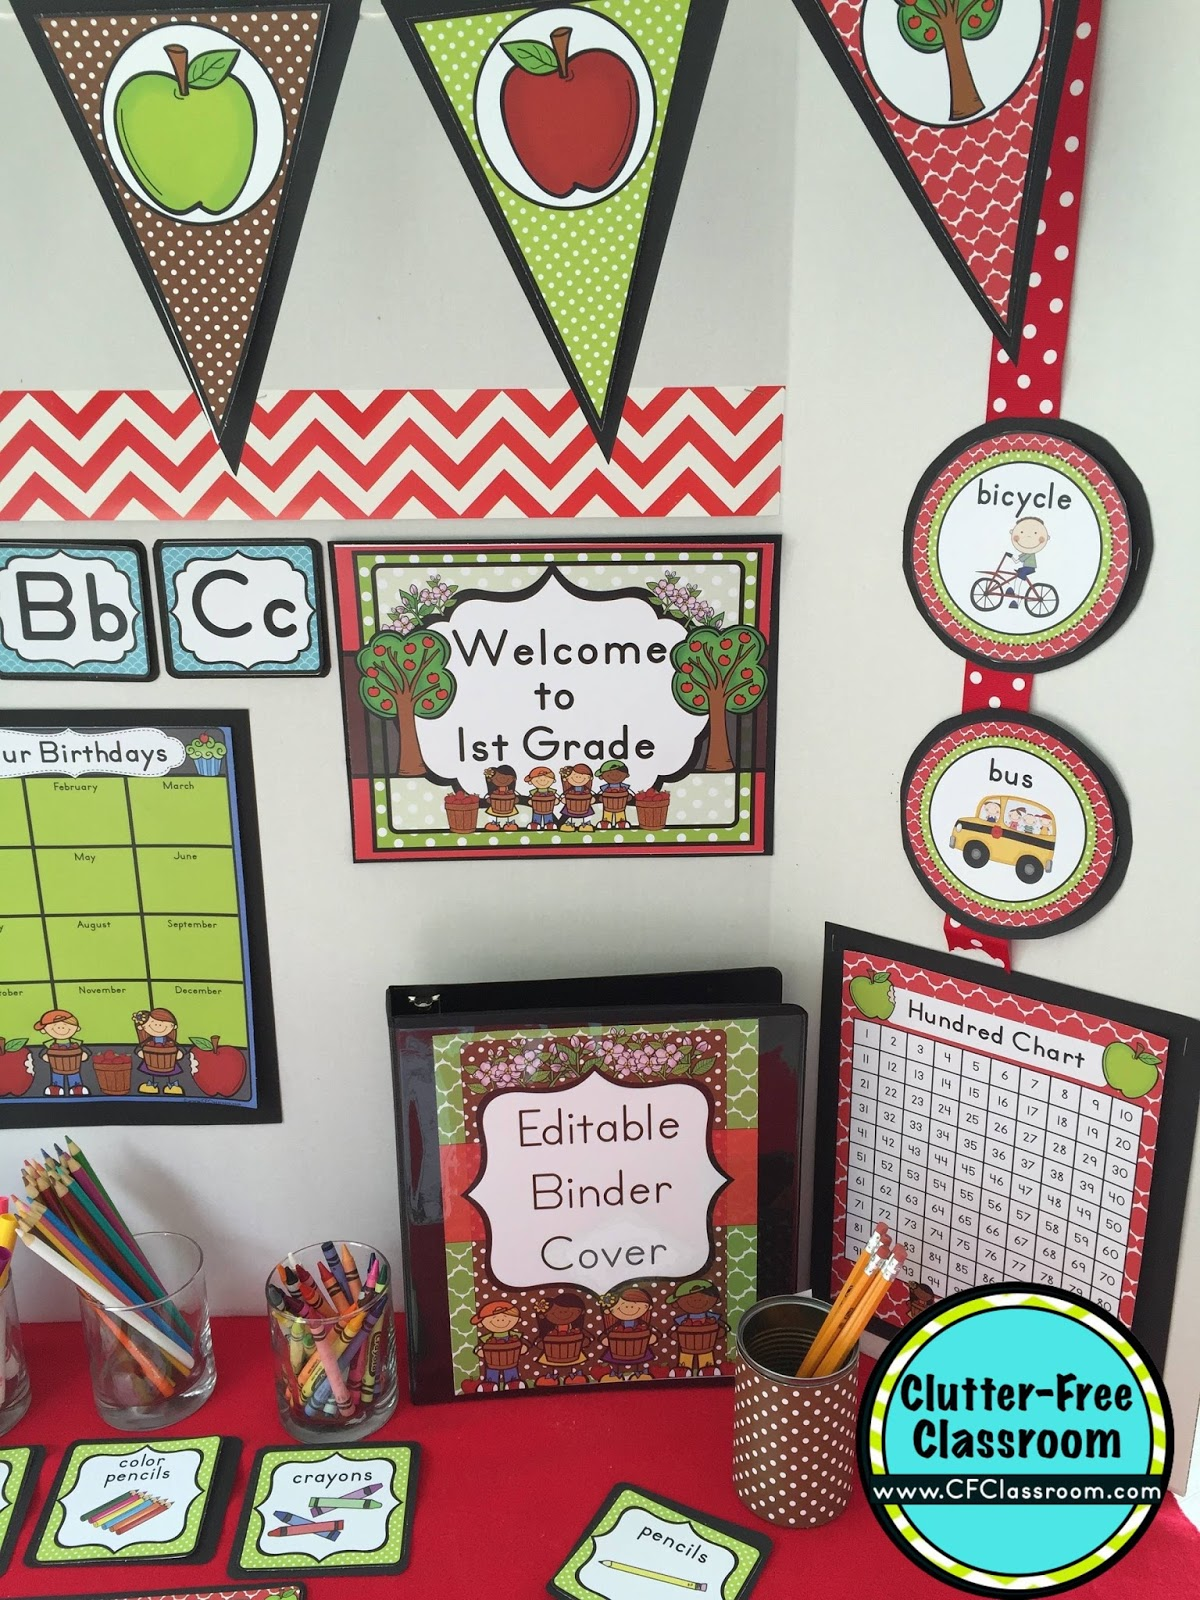 Classroom Ideas Printables ~ Apple themed classroom ideas printable